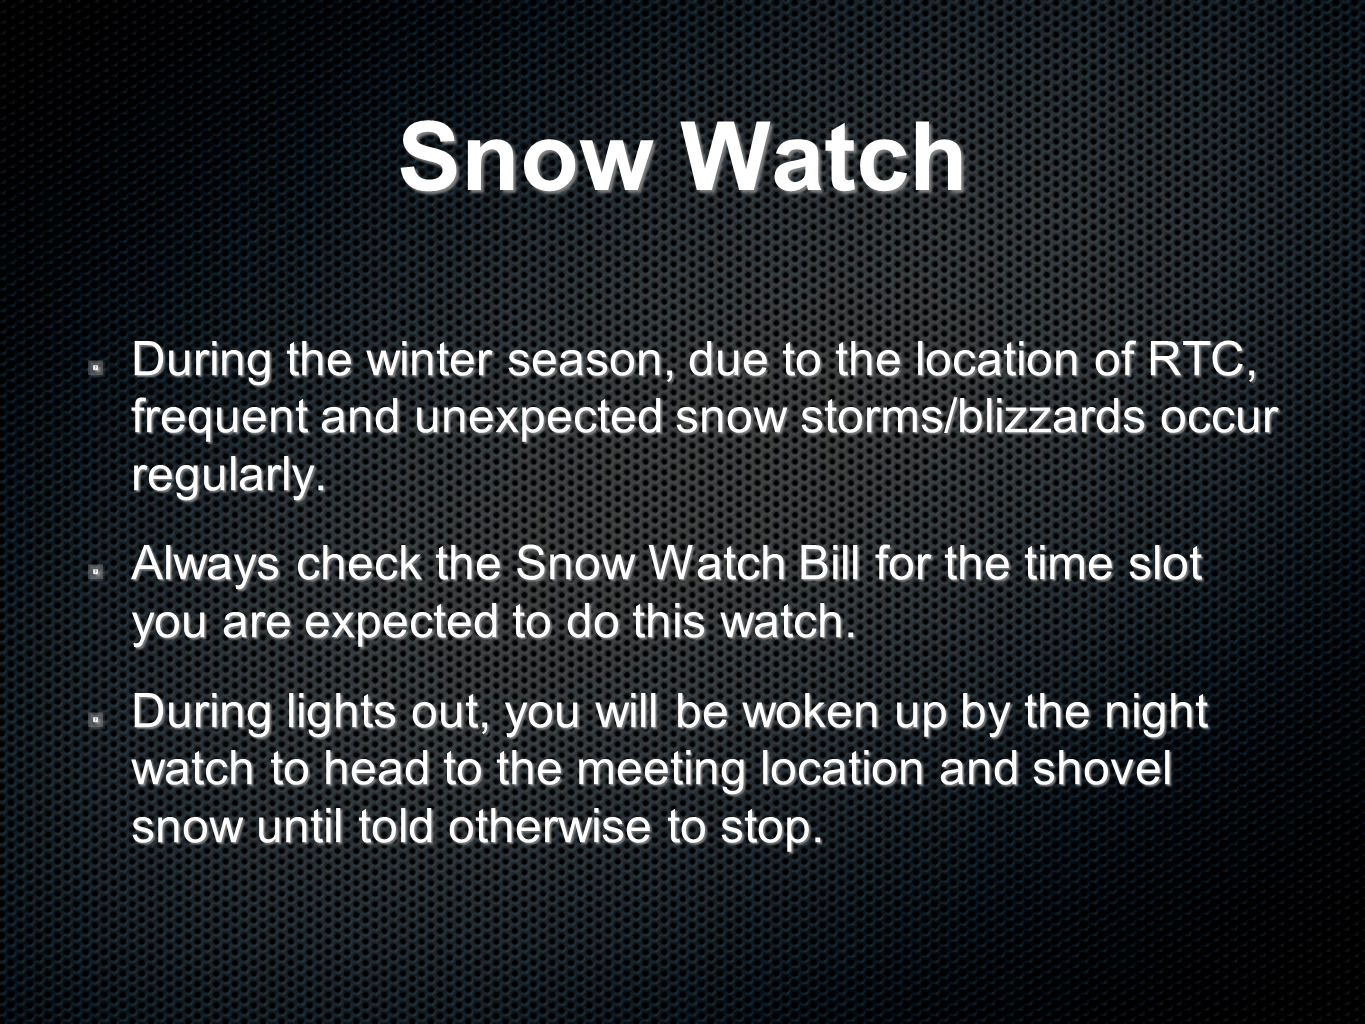 Snow Watch During the winter season, due to the location of RTC, frequent and unexpected snow storms/blizzards occur regularly.